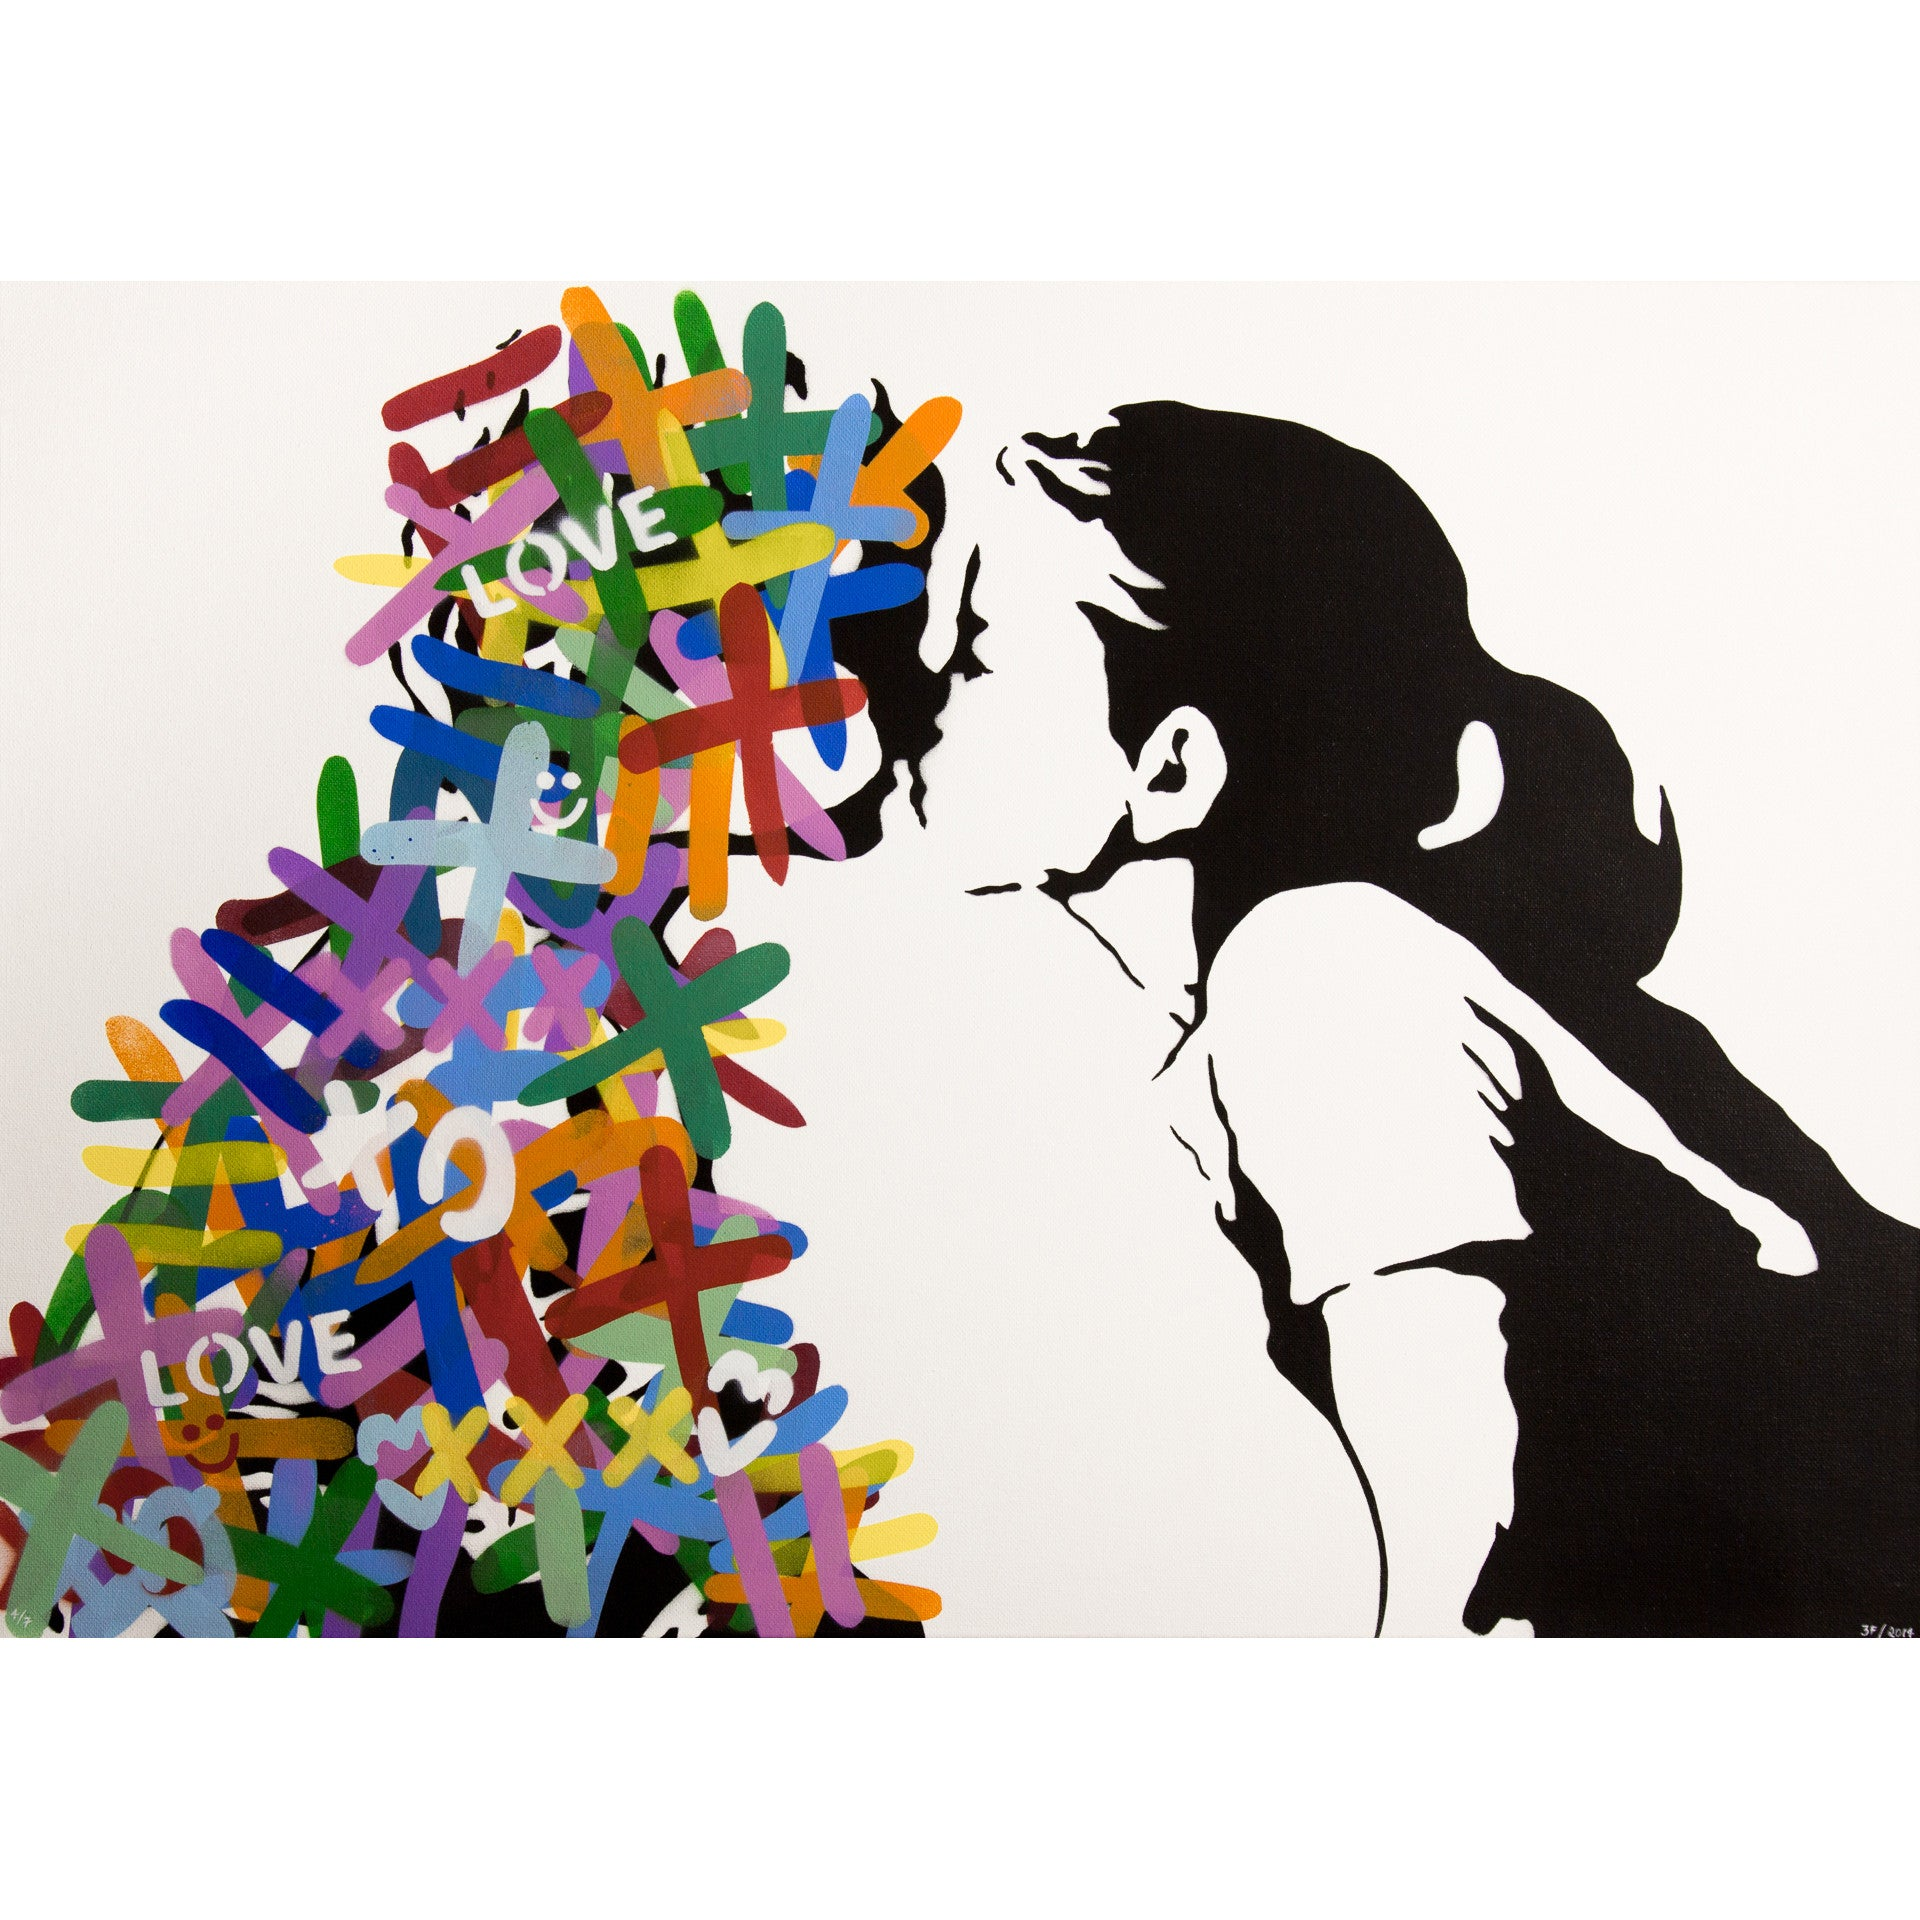 Spray painted outline of little girl with ponytail kissing a figure made up of colourful X's and O's